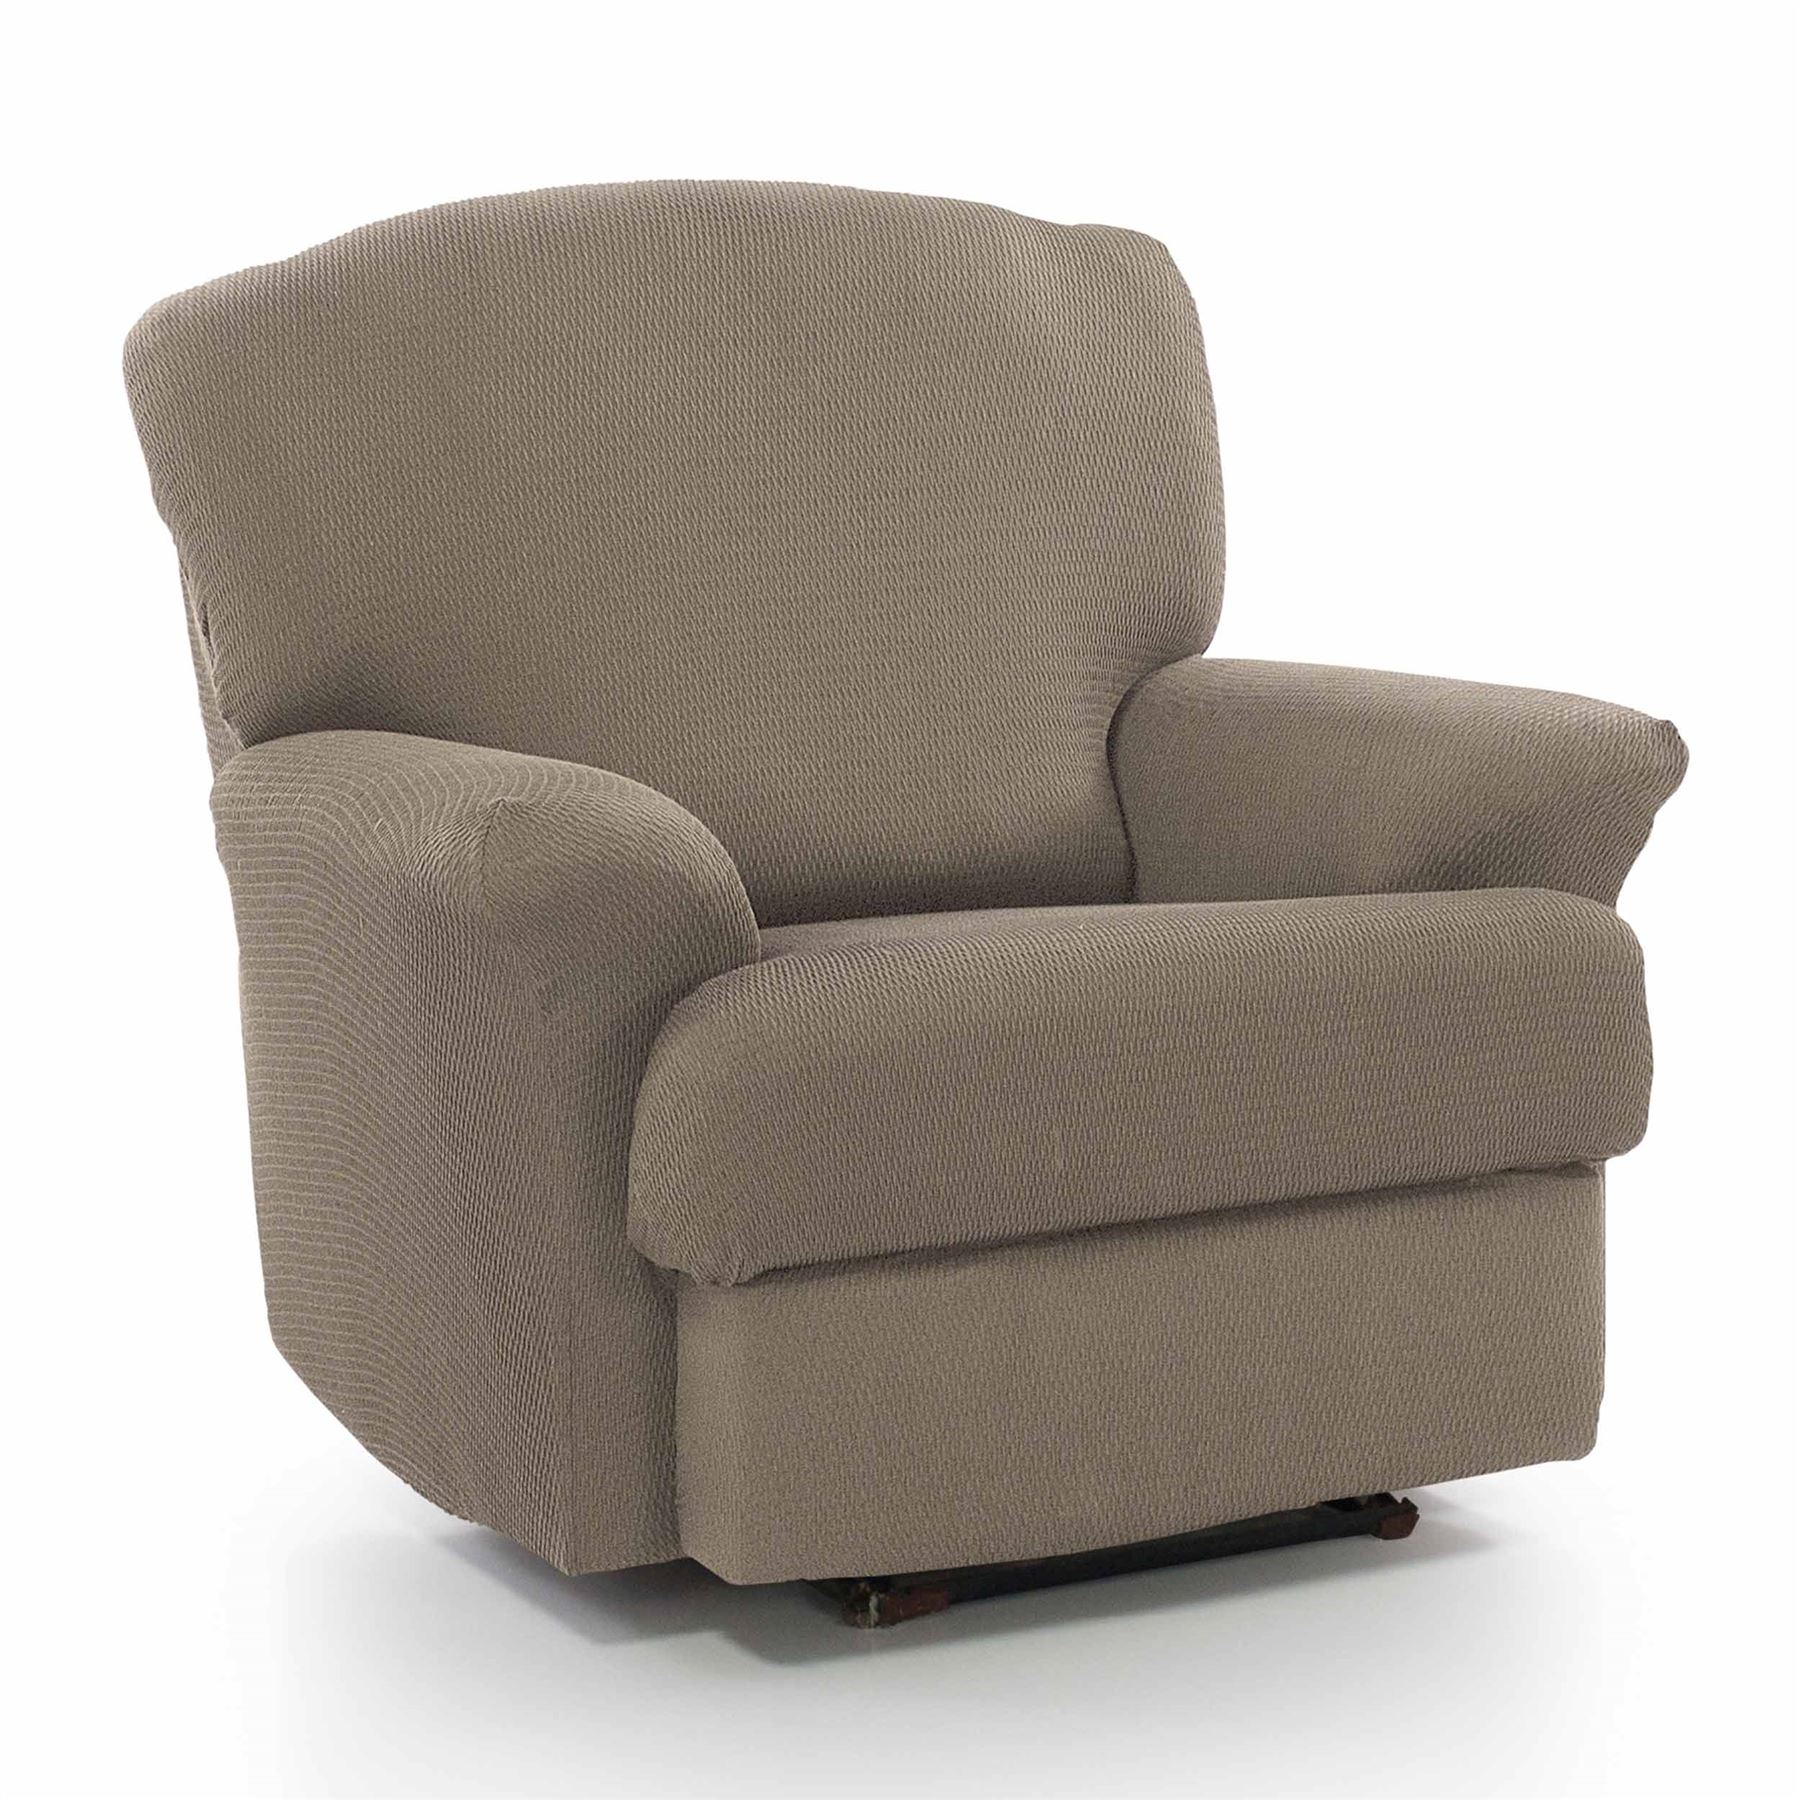 1 Seater Recliner Armchair Slipcover Stretch Elastic Sofa ...